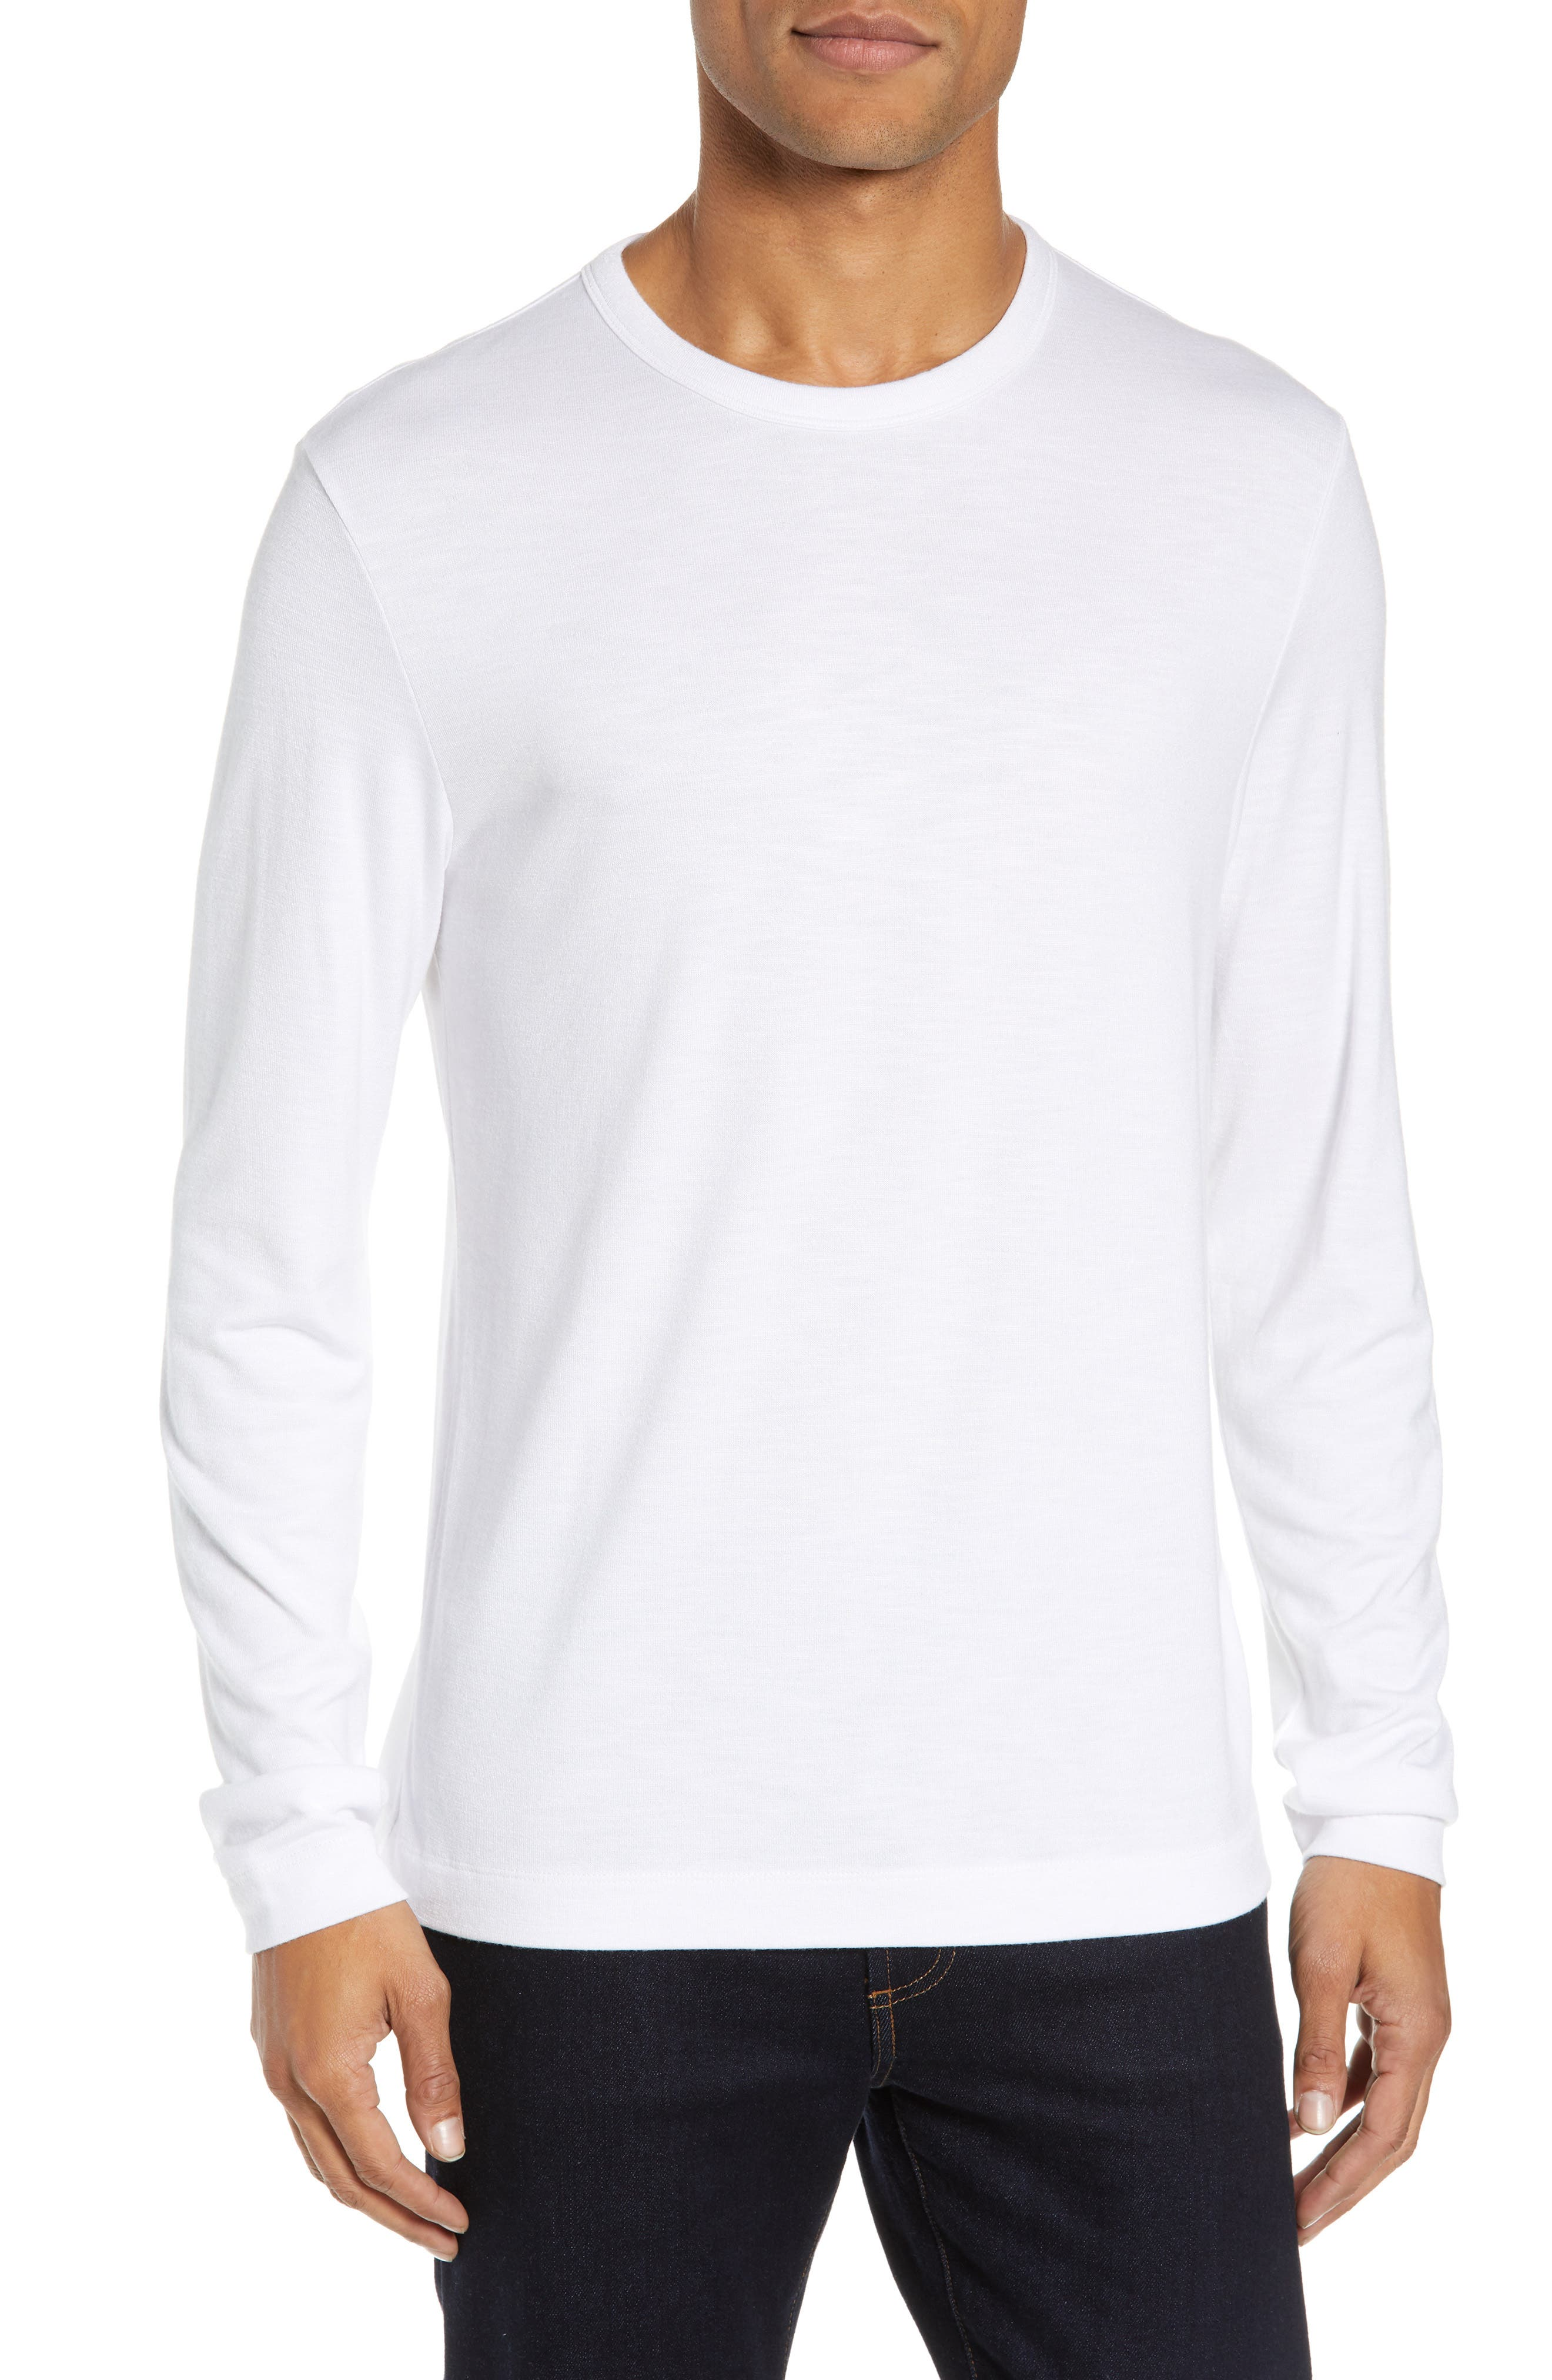 Gaskell Regular Fit Long Sleeve T-Shirt,                         Main,                         color, WHITE